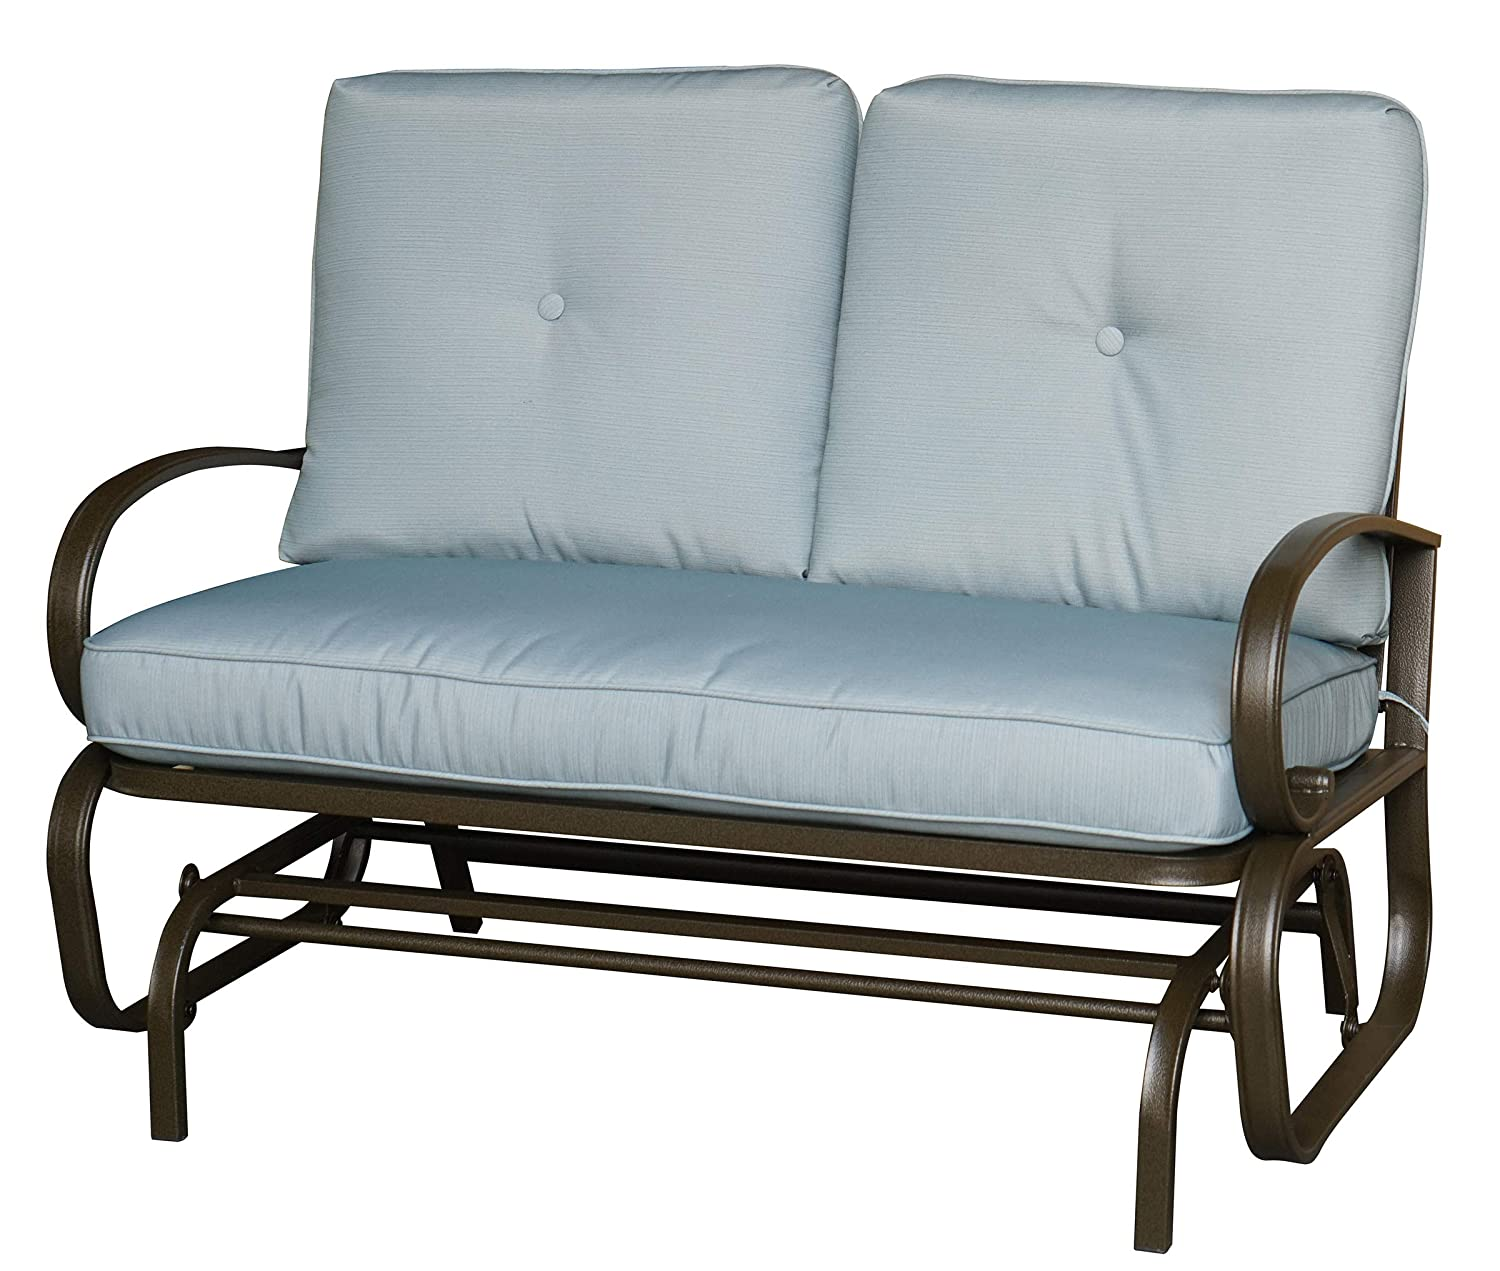 Kozyard Cozy Two Rocking Love Seats Glider Swing Bench Rocker for Patio, Yard with Soft Cushion and Sturdy Frame Blue